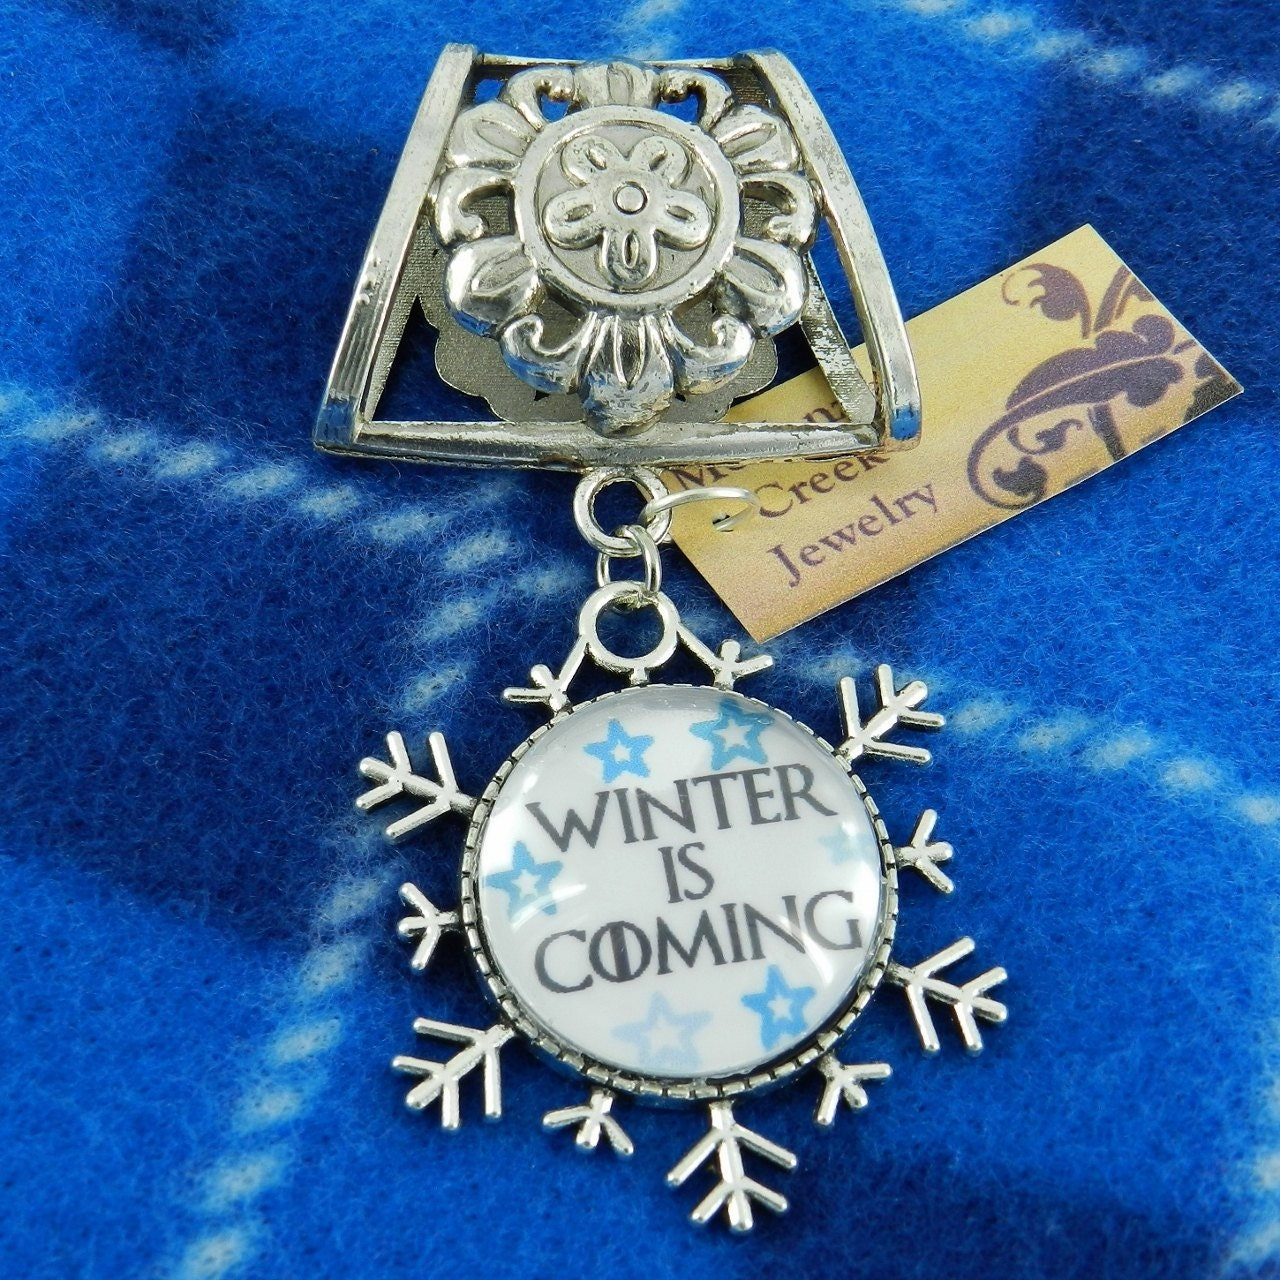 Winter,Is,Coming,Scarf,Pendant,~,Game,of,Thrones,Jewelry,Accessory~,Charm,Slide,Accessories,scarf_charm,scarf_accessory,scarf_pendant,scarf_jewelry,scarf_slide,scarf_bling,Game_of_Thrones,Winter_is_Coming,Winter_jewelry,snowflake_jewelry,blue_snowflakes,winter_accessory,Jon_Snow,Snowflake setting,Glass cabochon,Silver alloy sli